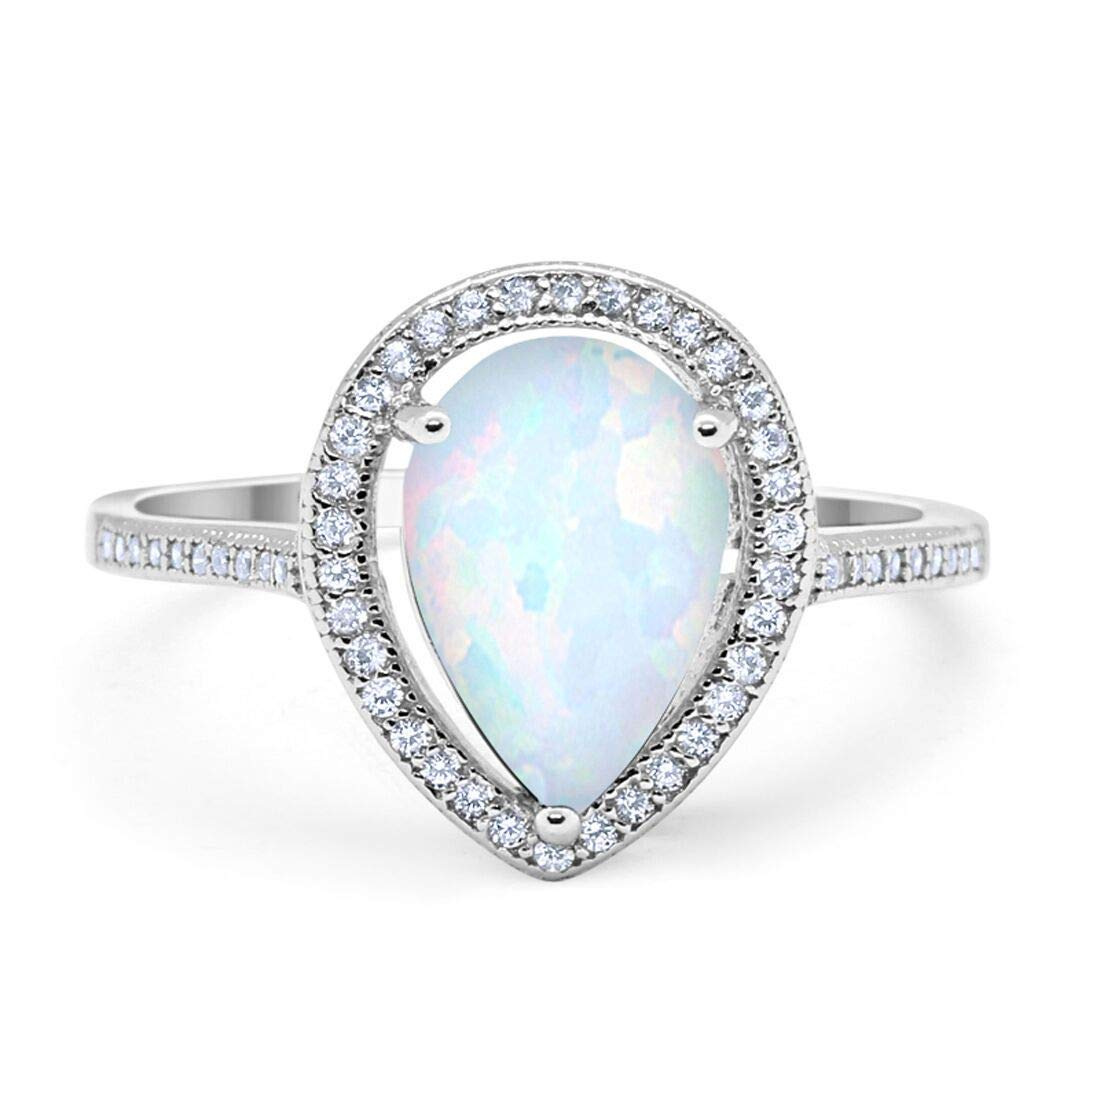 Blue Apple Co. Halo Teardrop Pear Simulated Morganite Bridal Ring Rose Tone Plated 925 Sterling Silver Choose Color